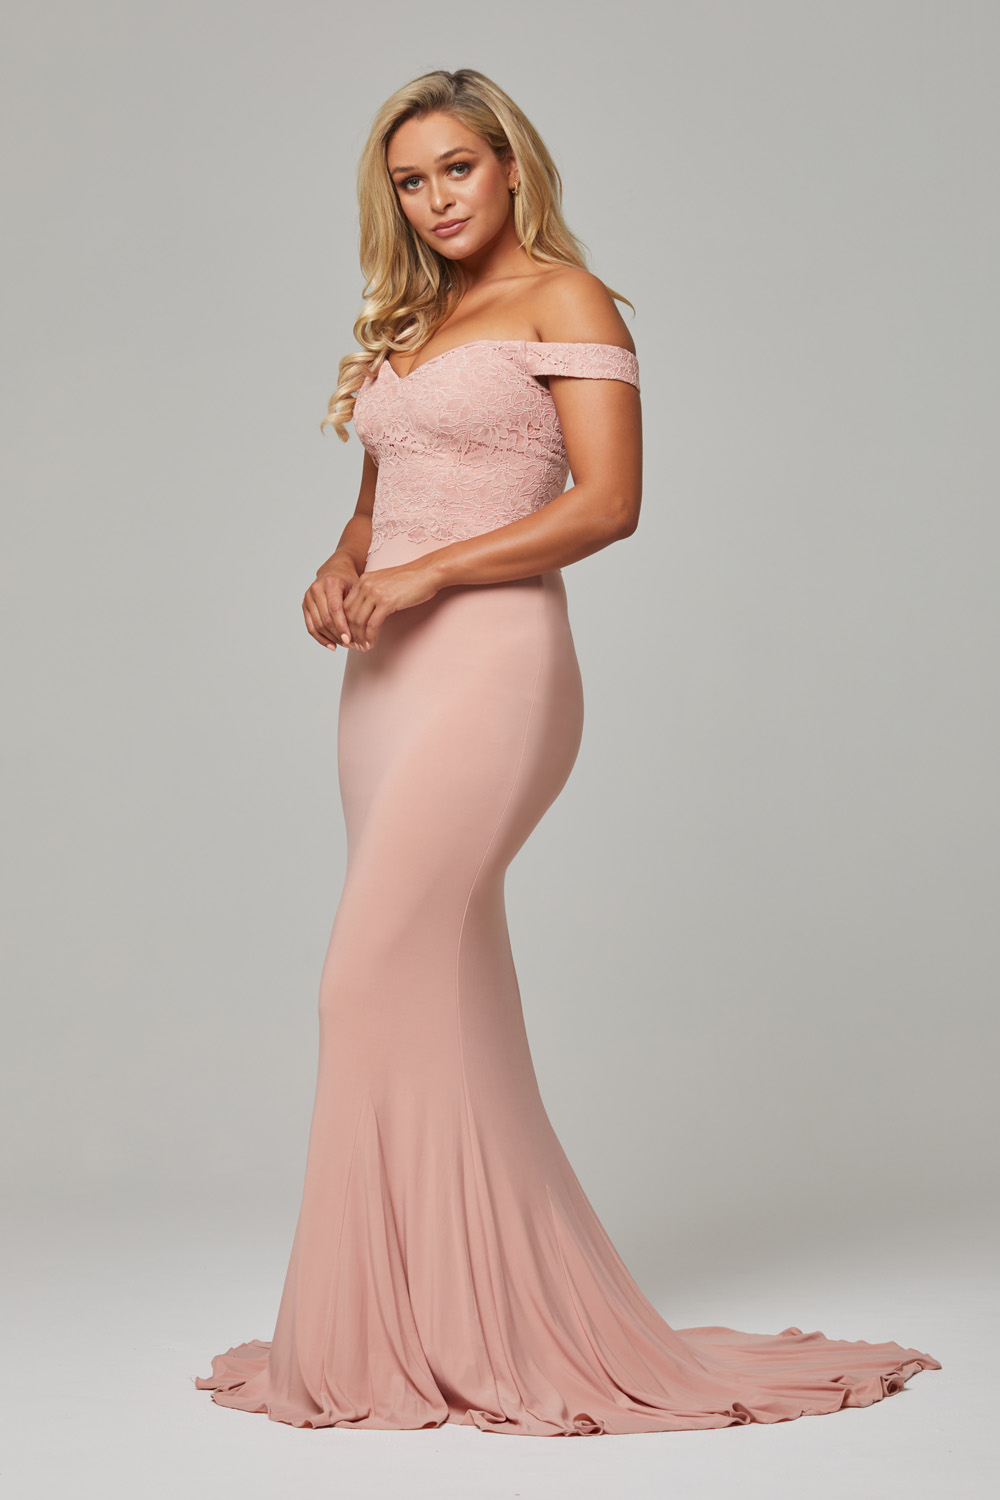 Jacqulyn off the shoulder bridesmaid dress blush